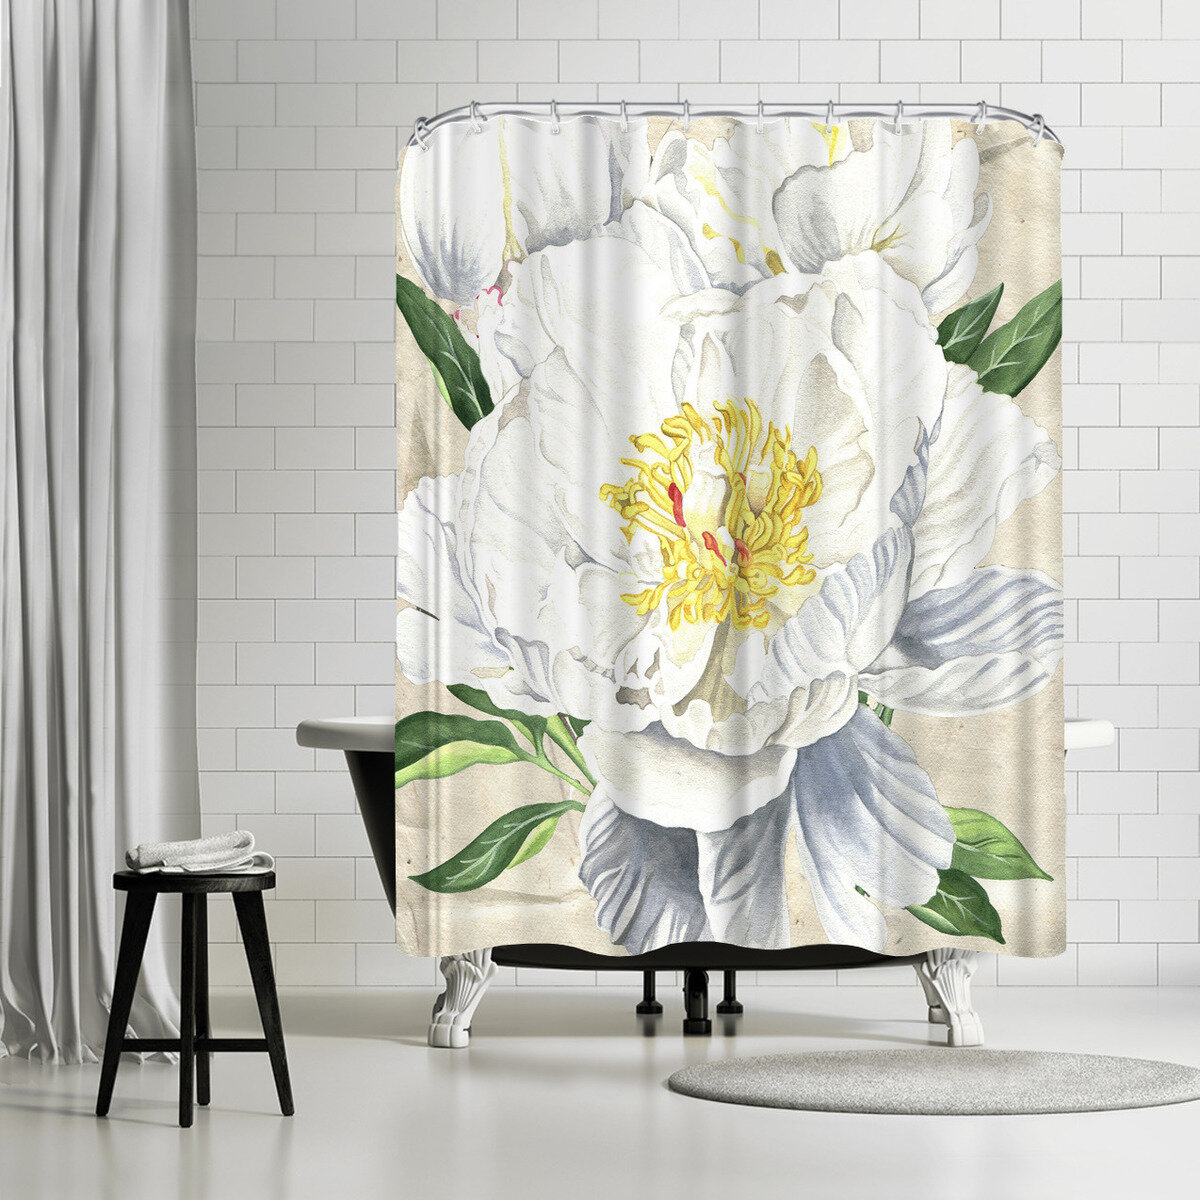 East Urban Home Elizabeth Hellman White Peony Shower Curtain